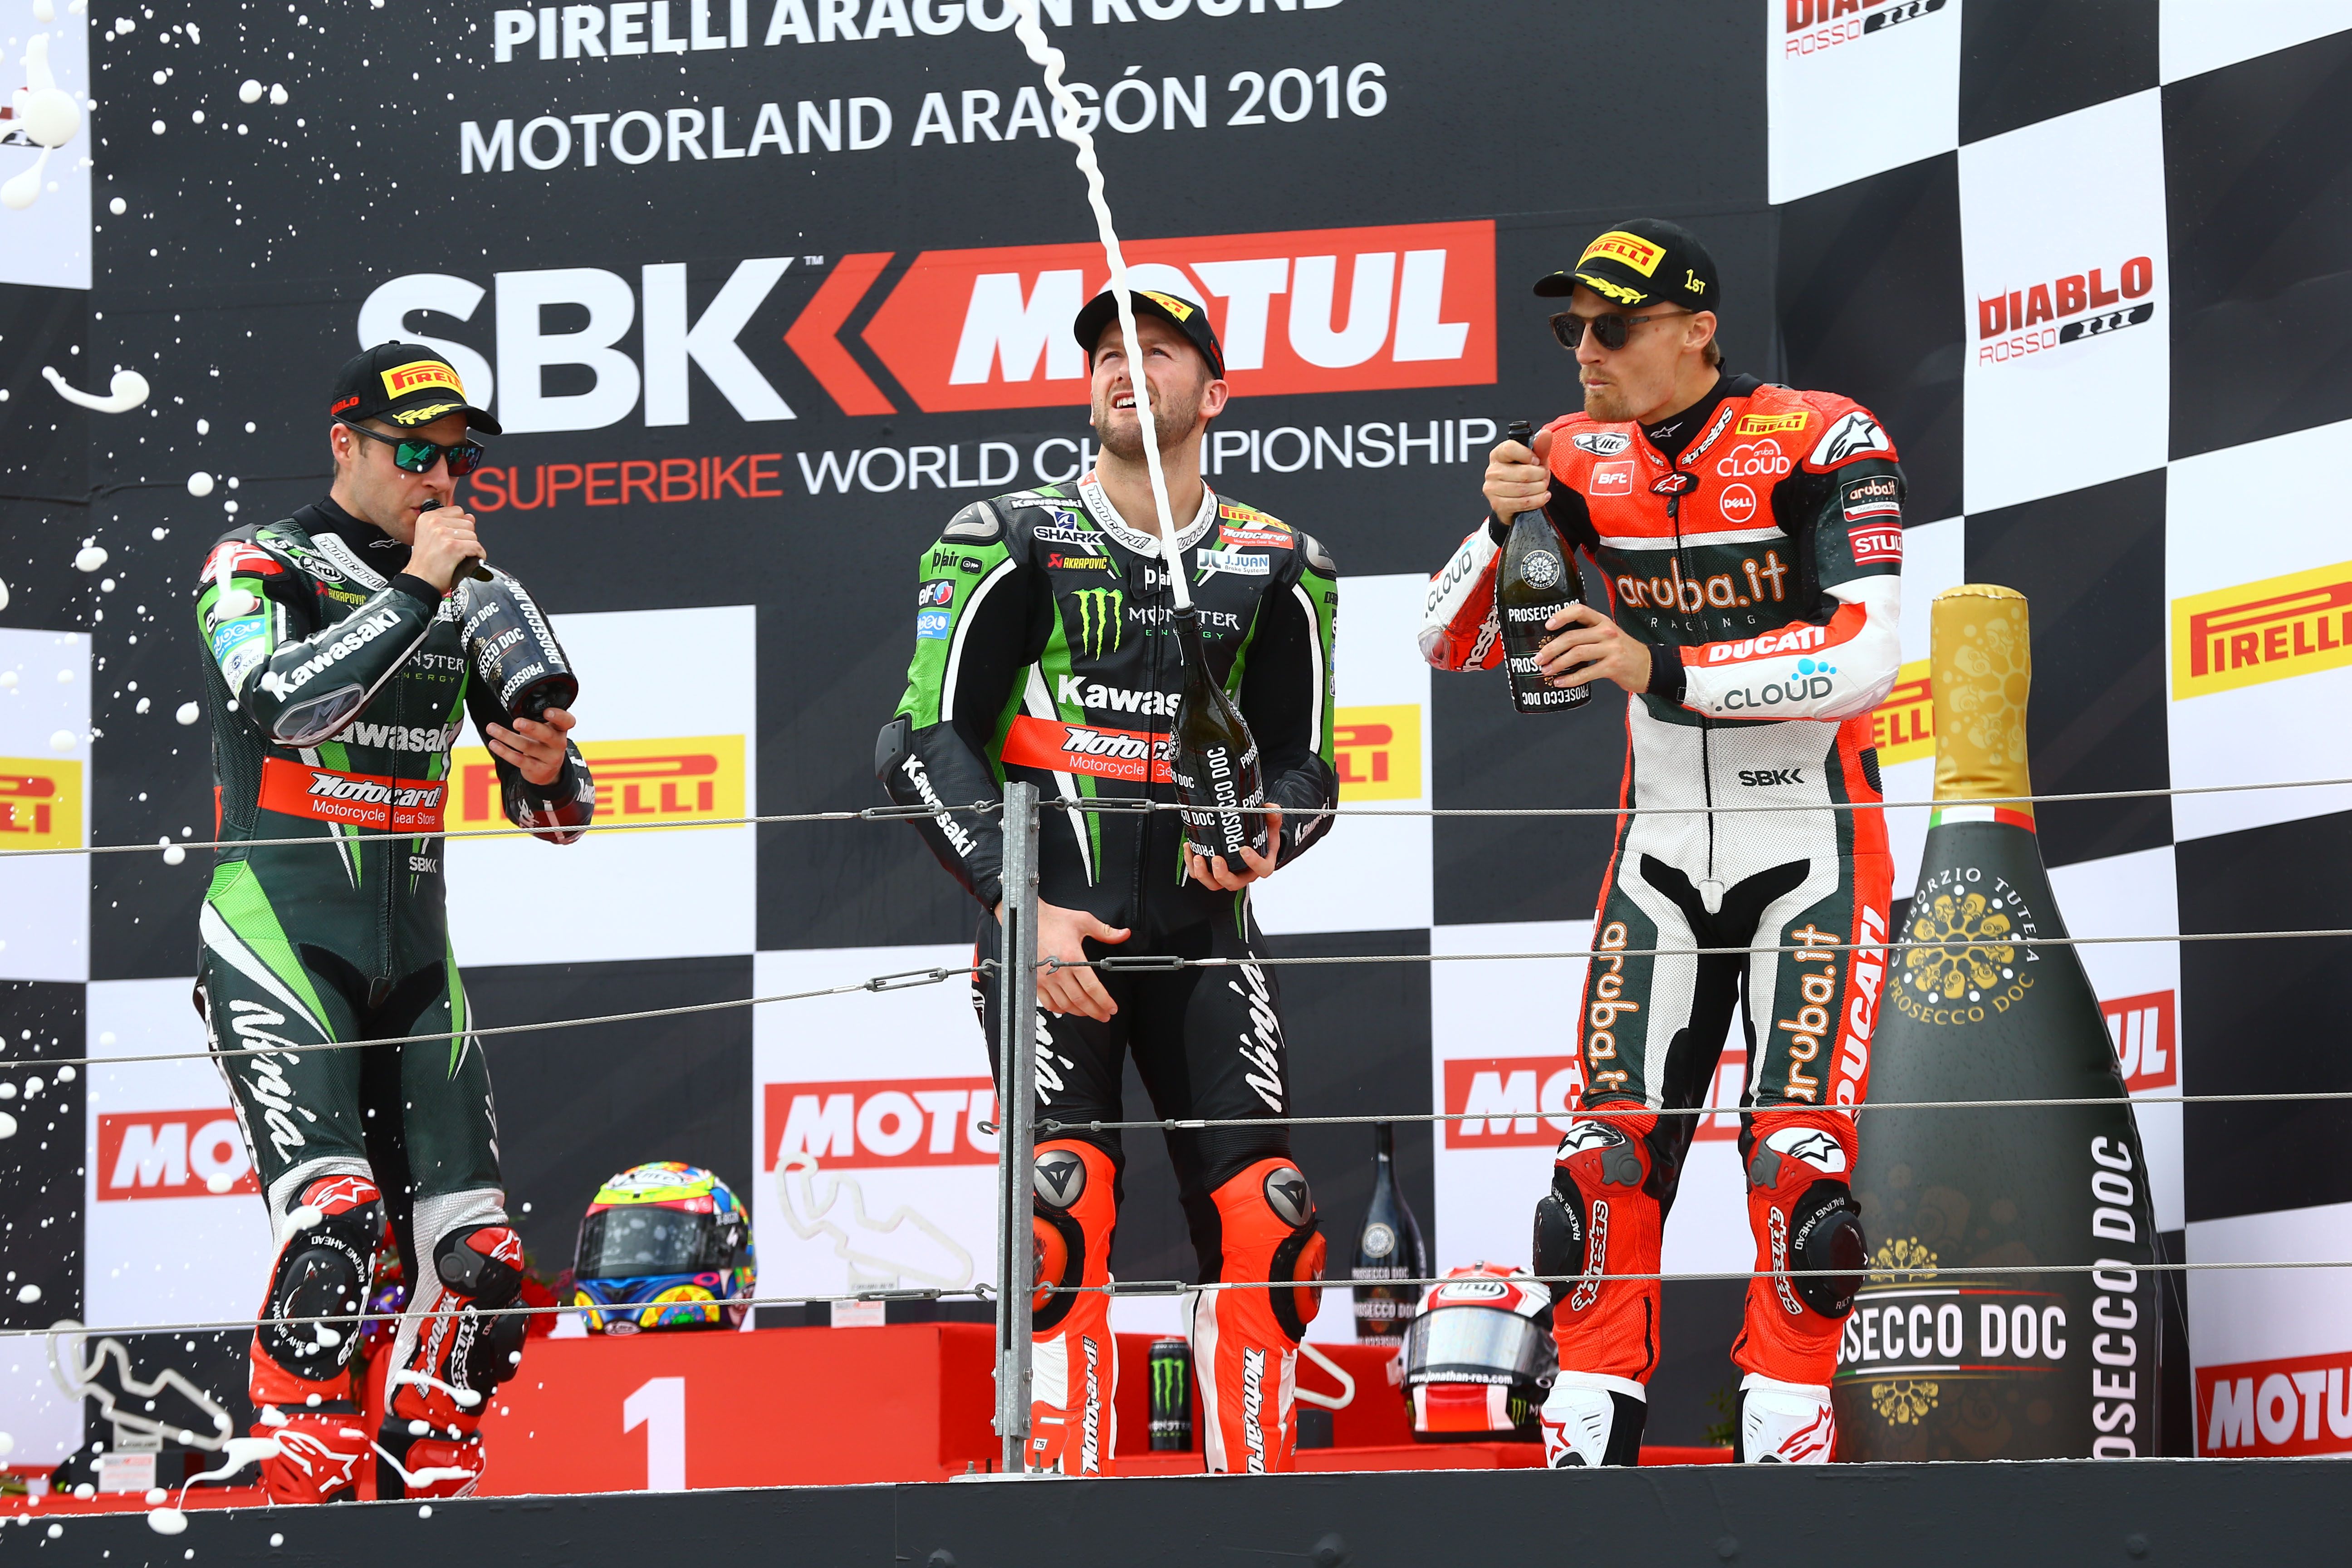 WSB 2016: Championship standings after Aragon